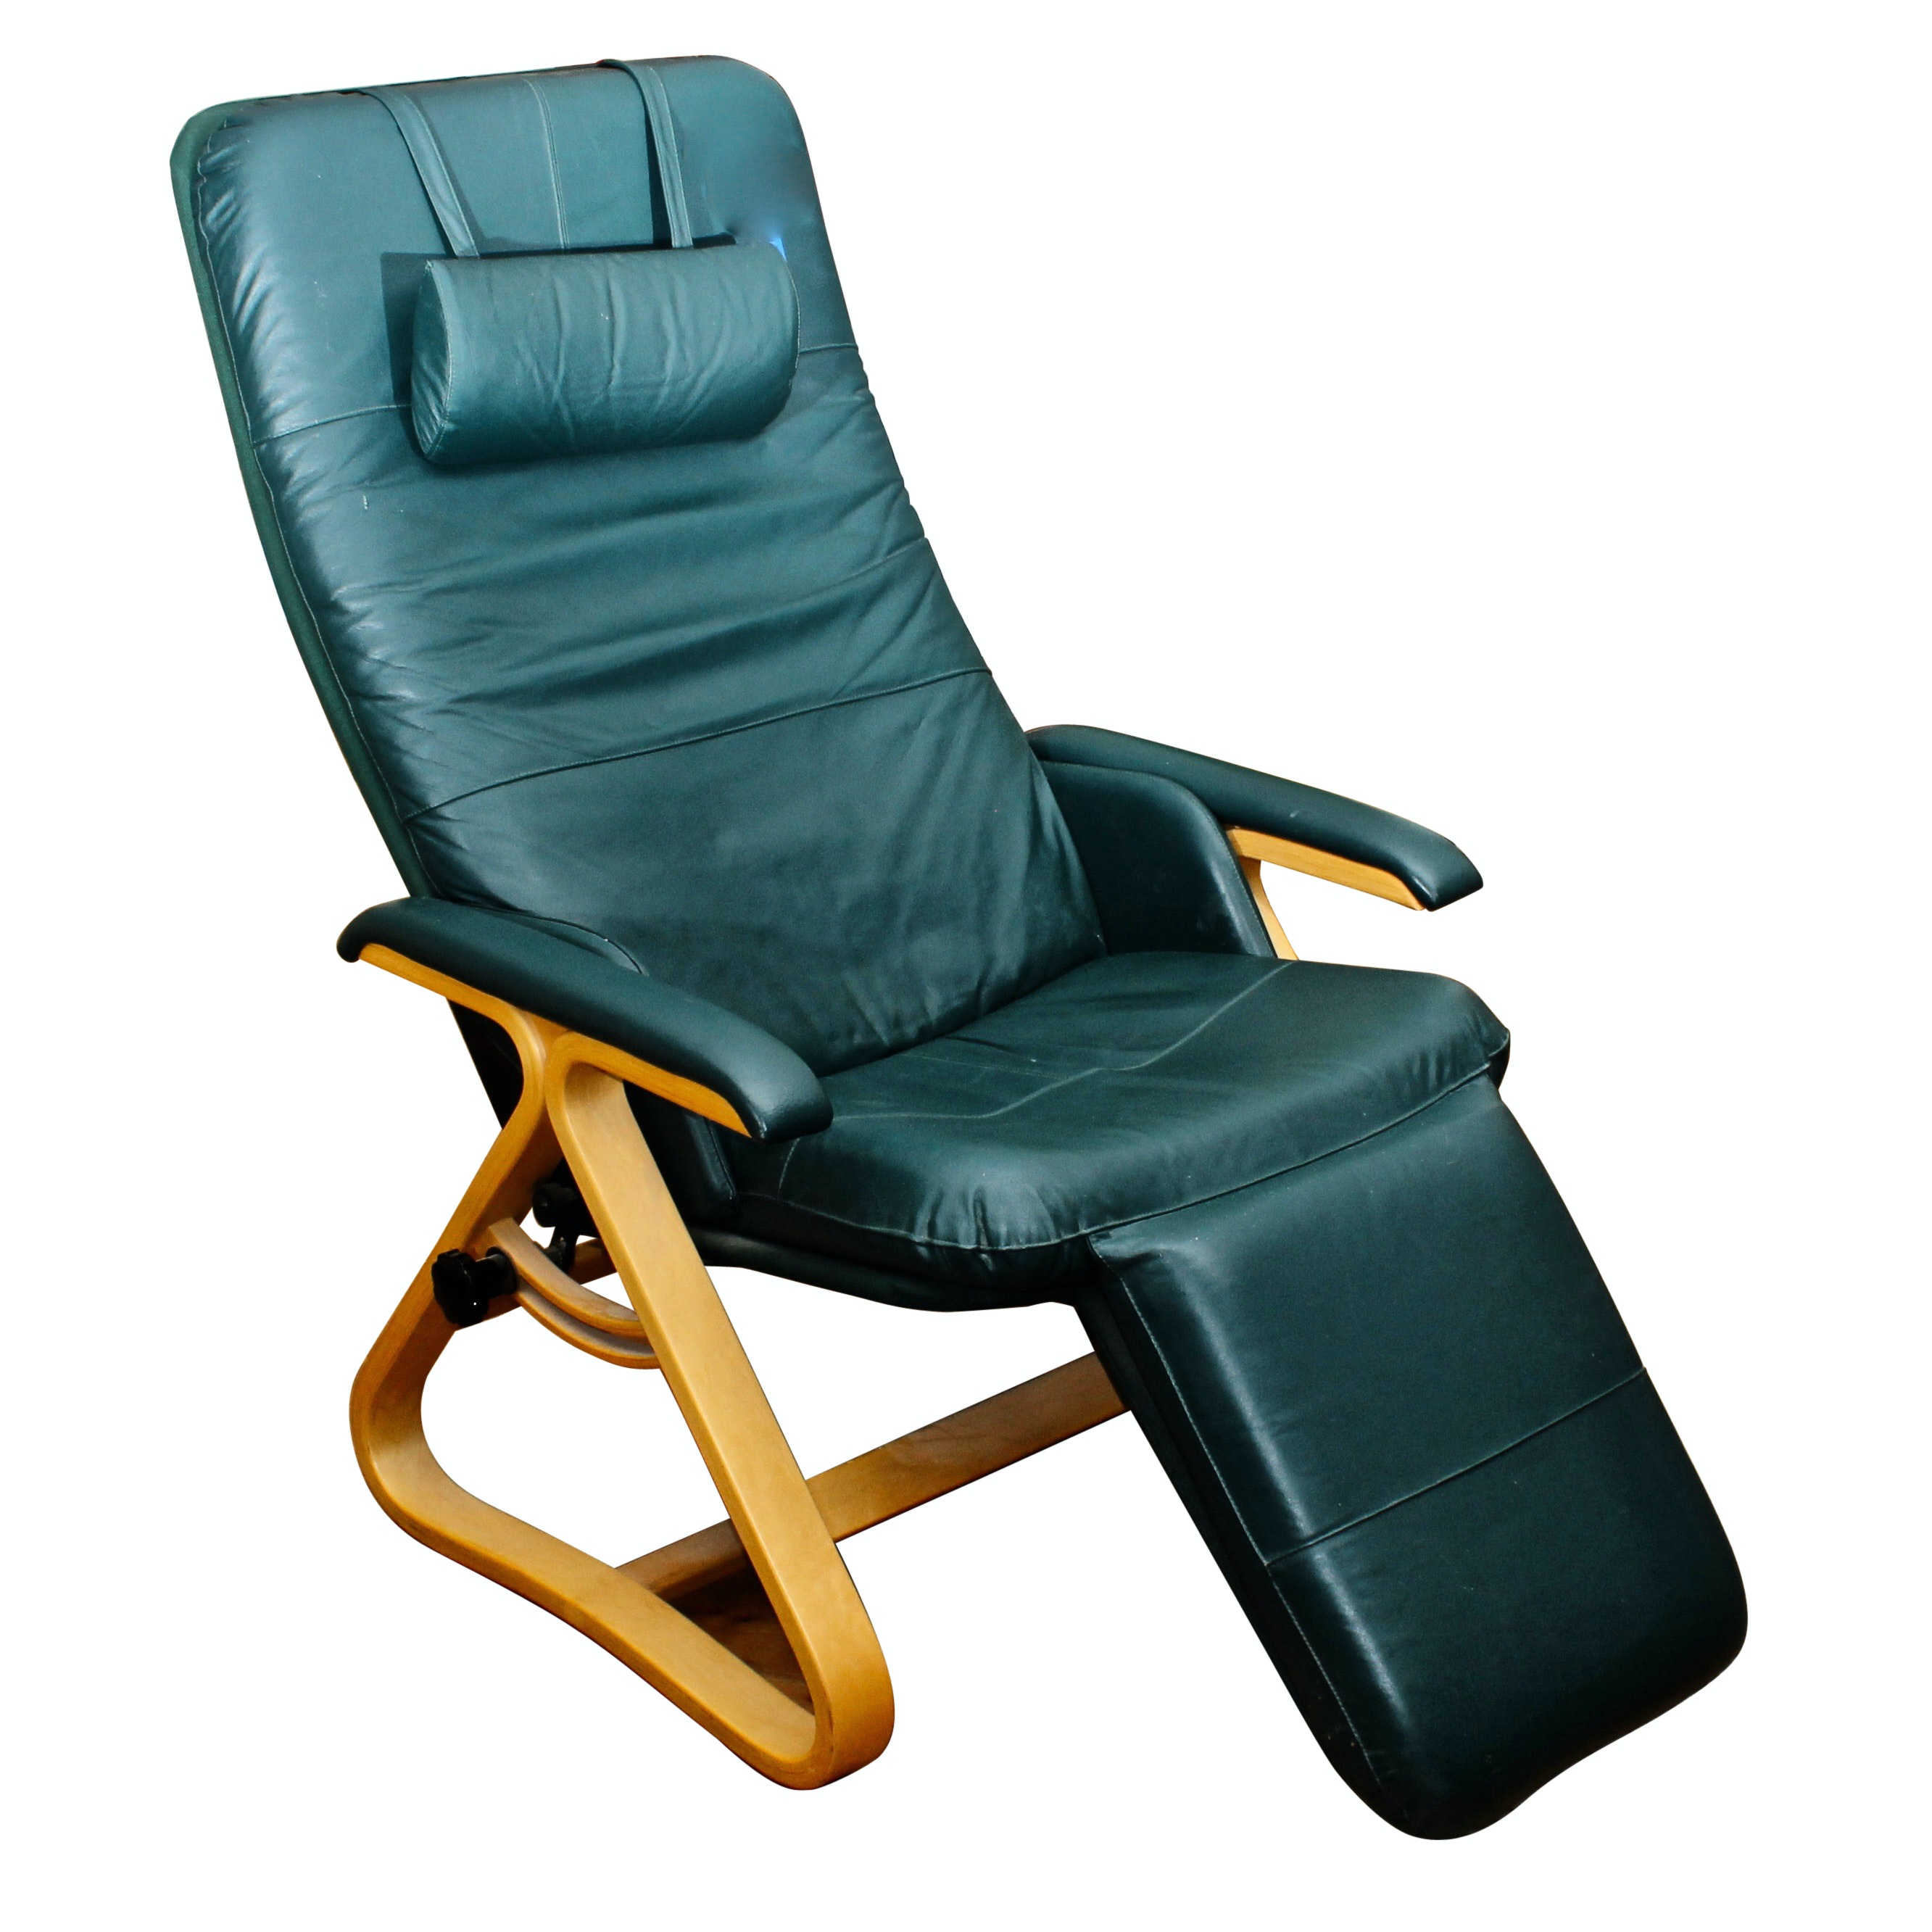 """Backsaver"" Zero Gravity Green Leather Recliner"